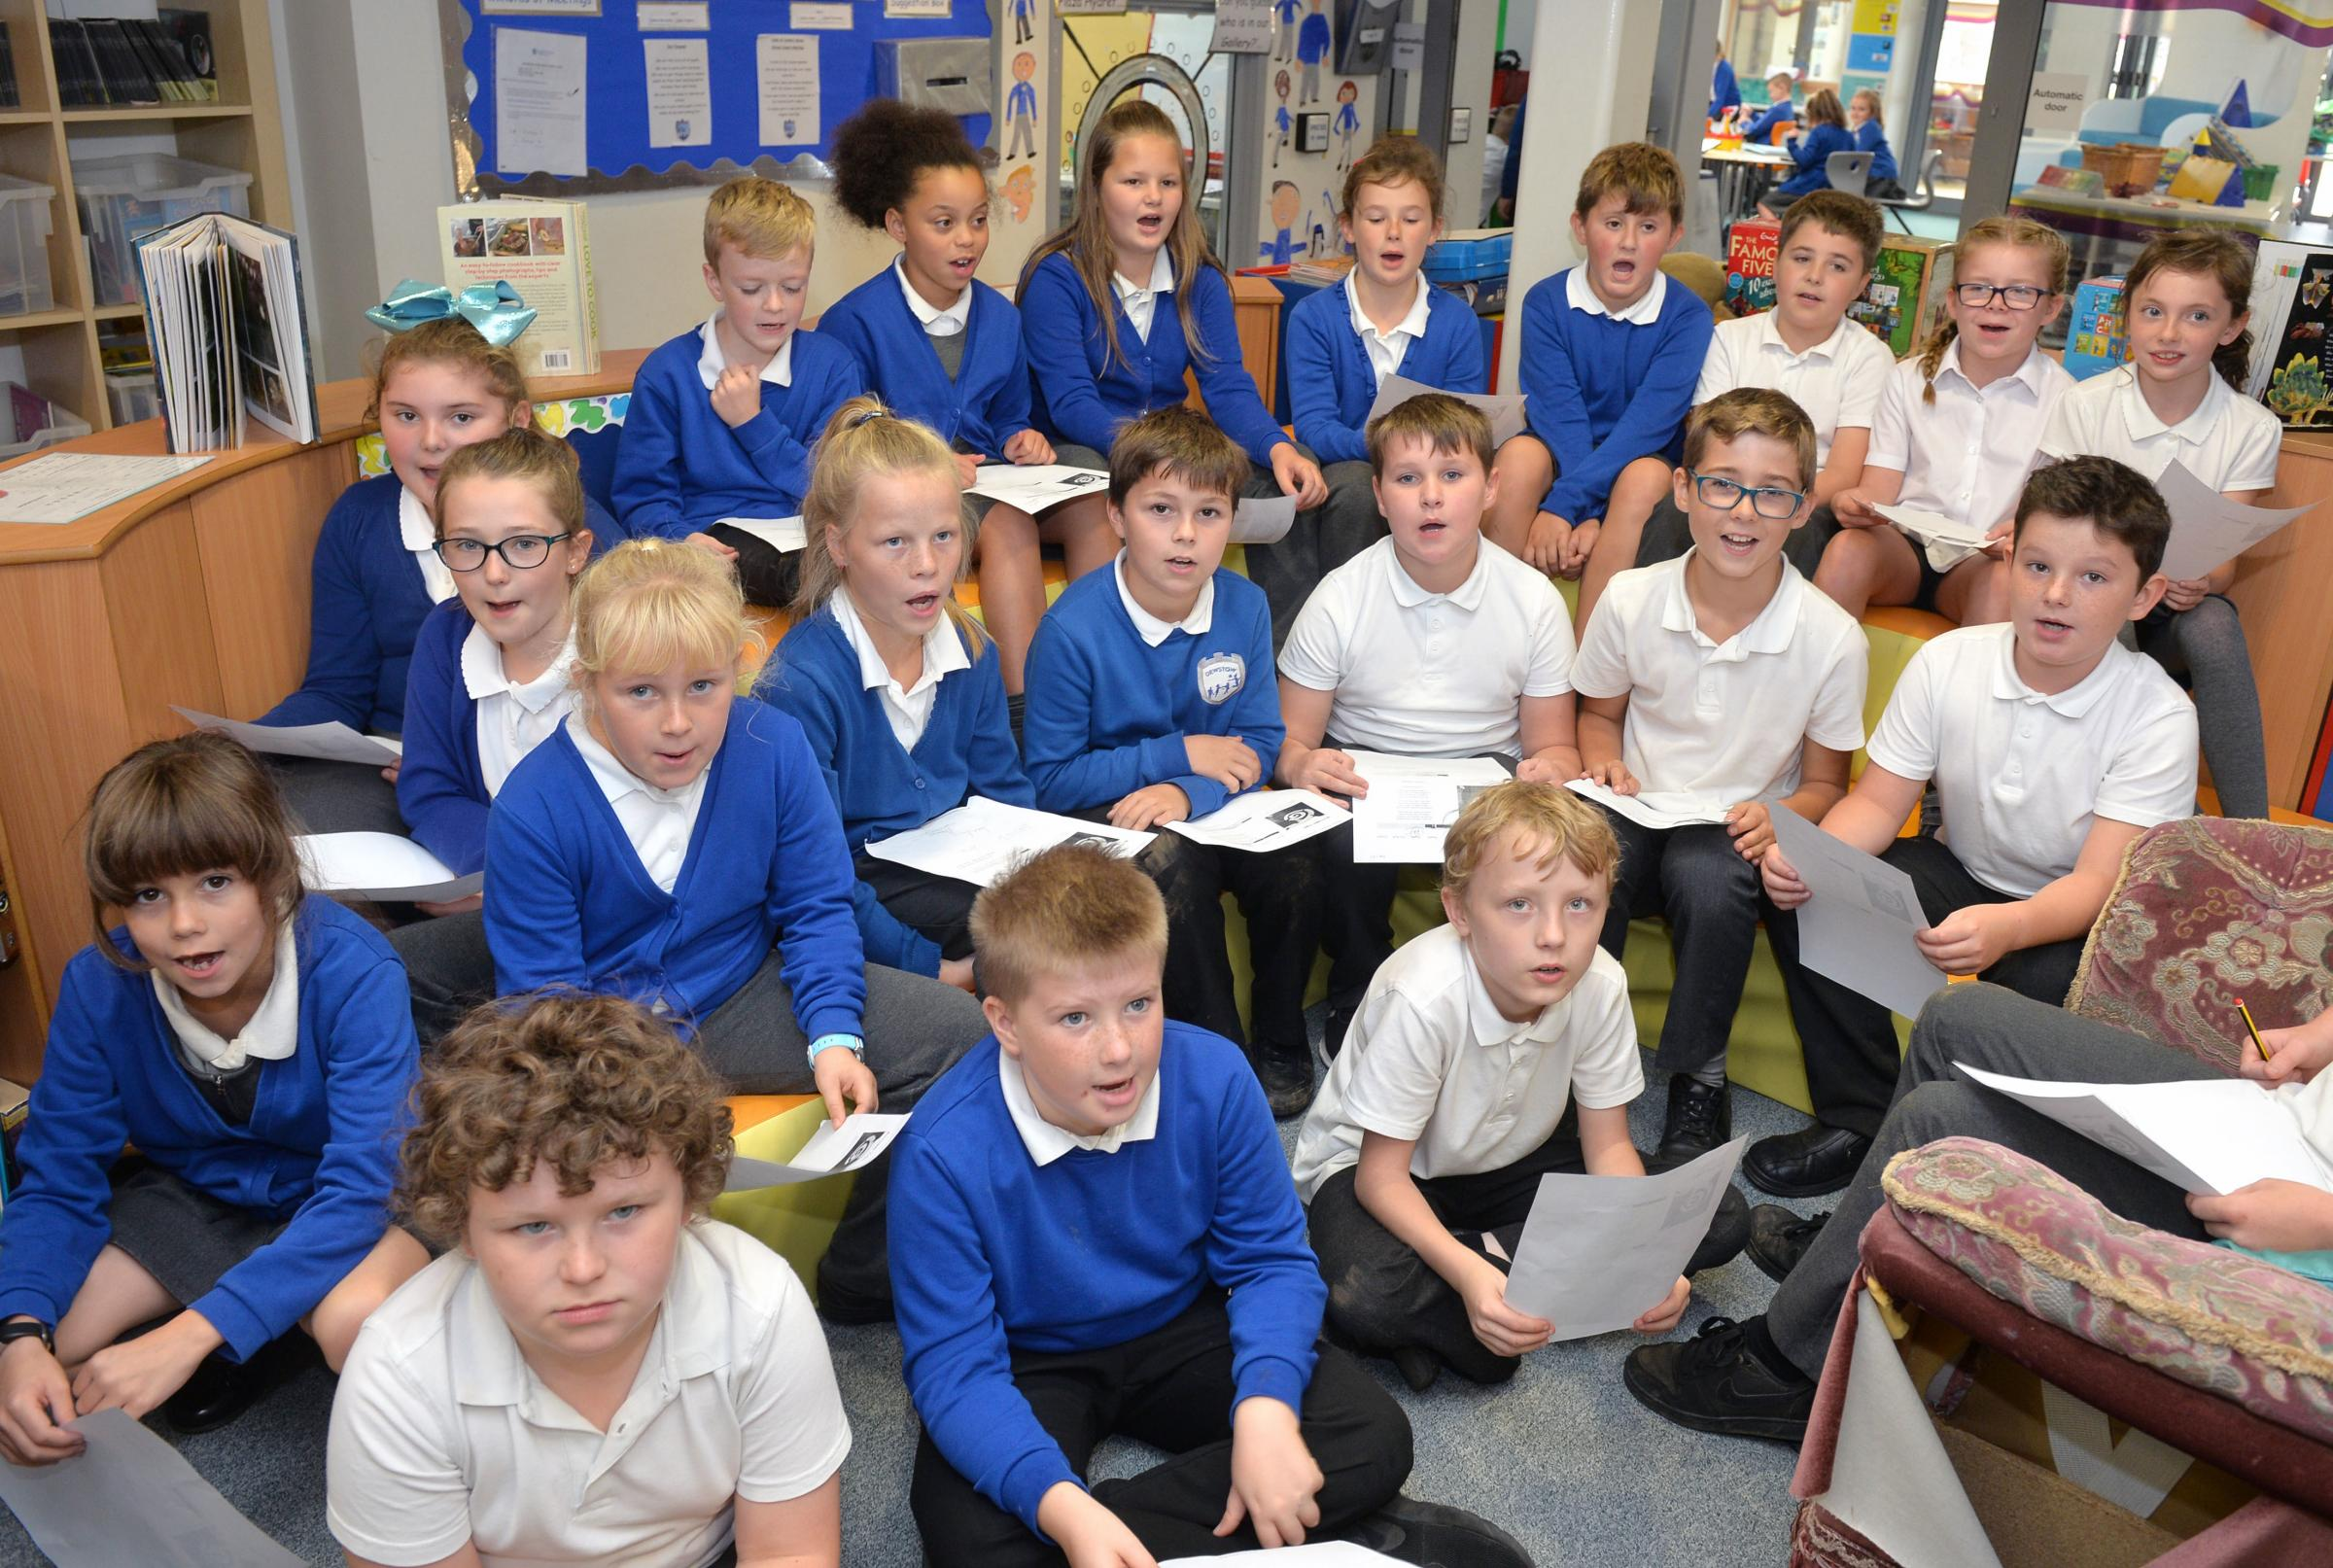 SCHOOL OF THE WEEK: Fun approach to learning reaps rewards at Dewstow Primary